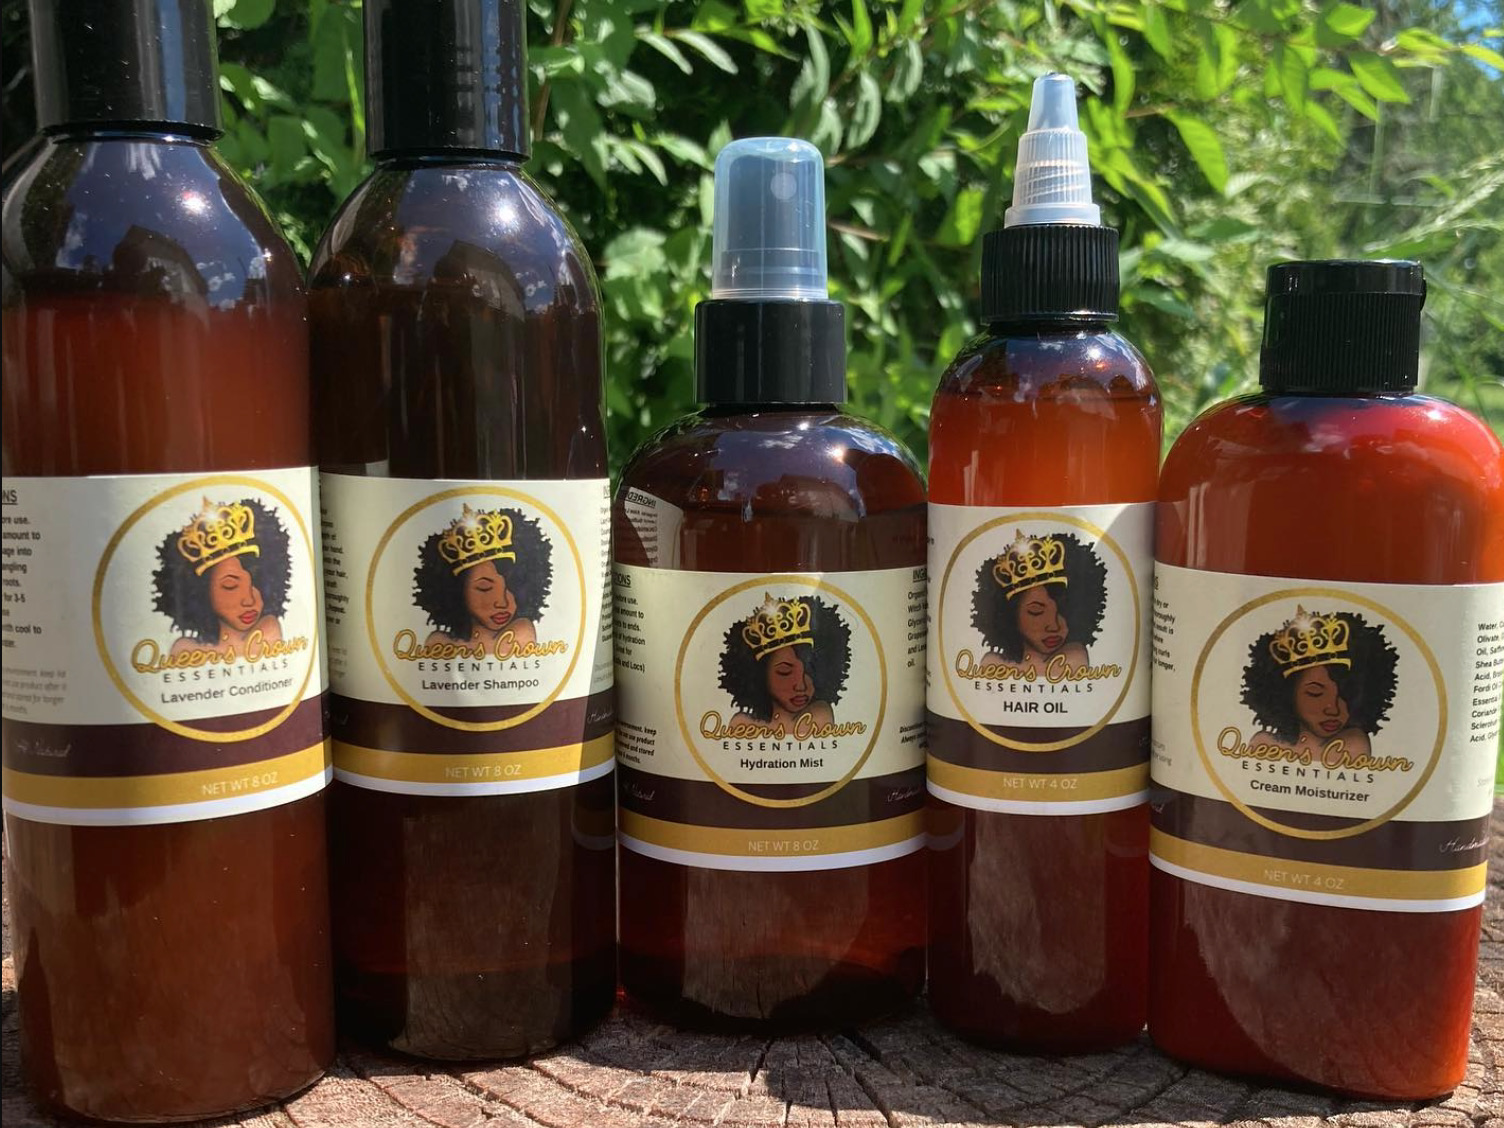 Queens Crown Essentials haircare